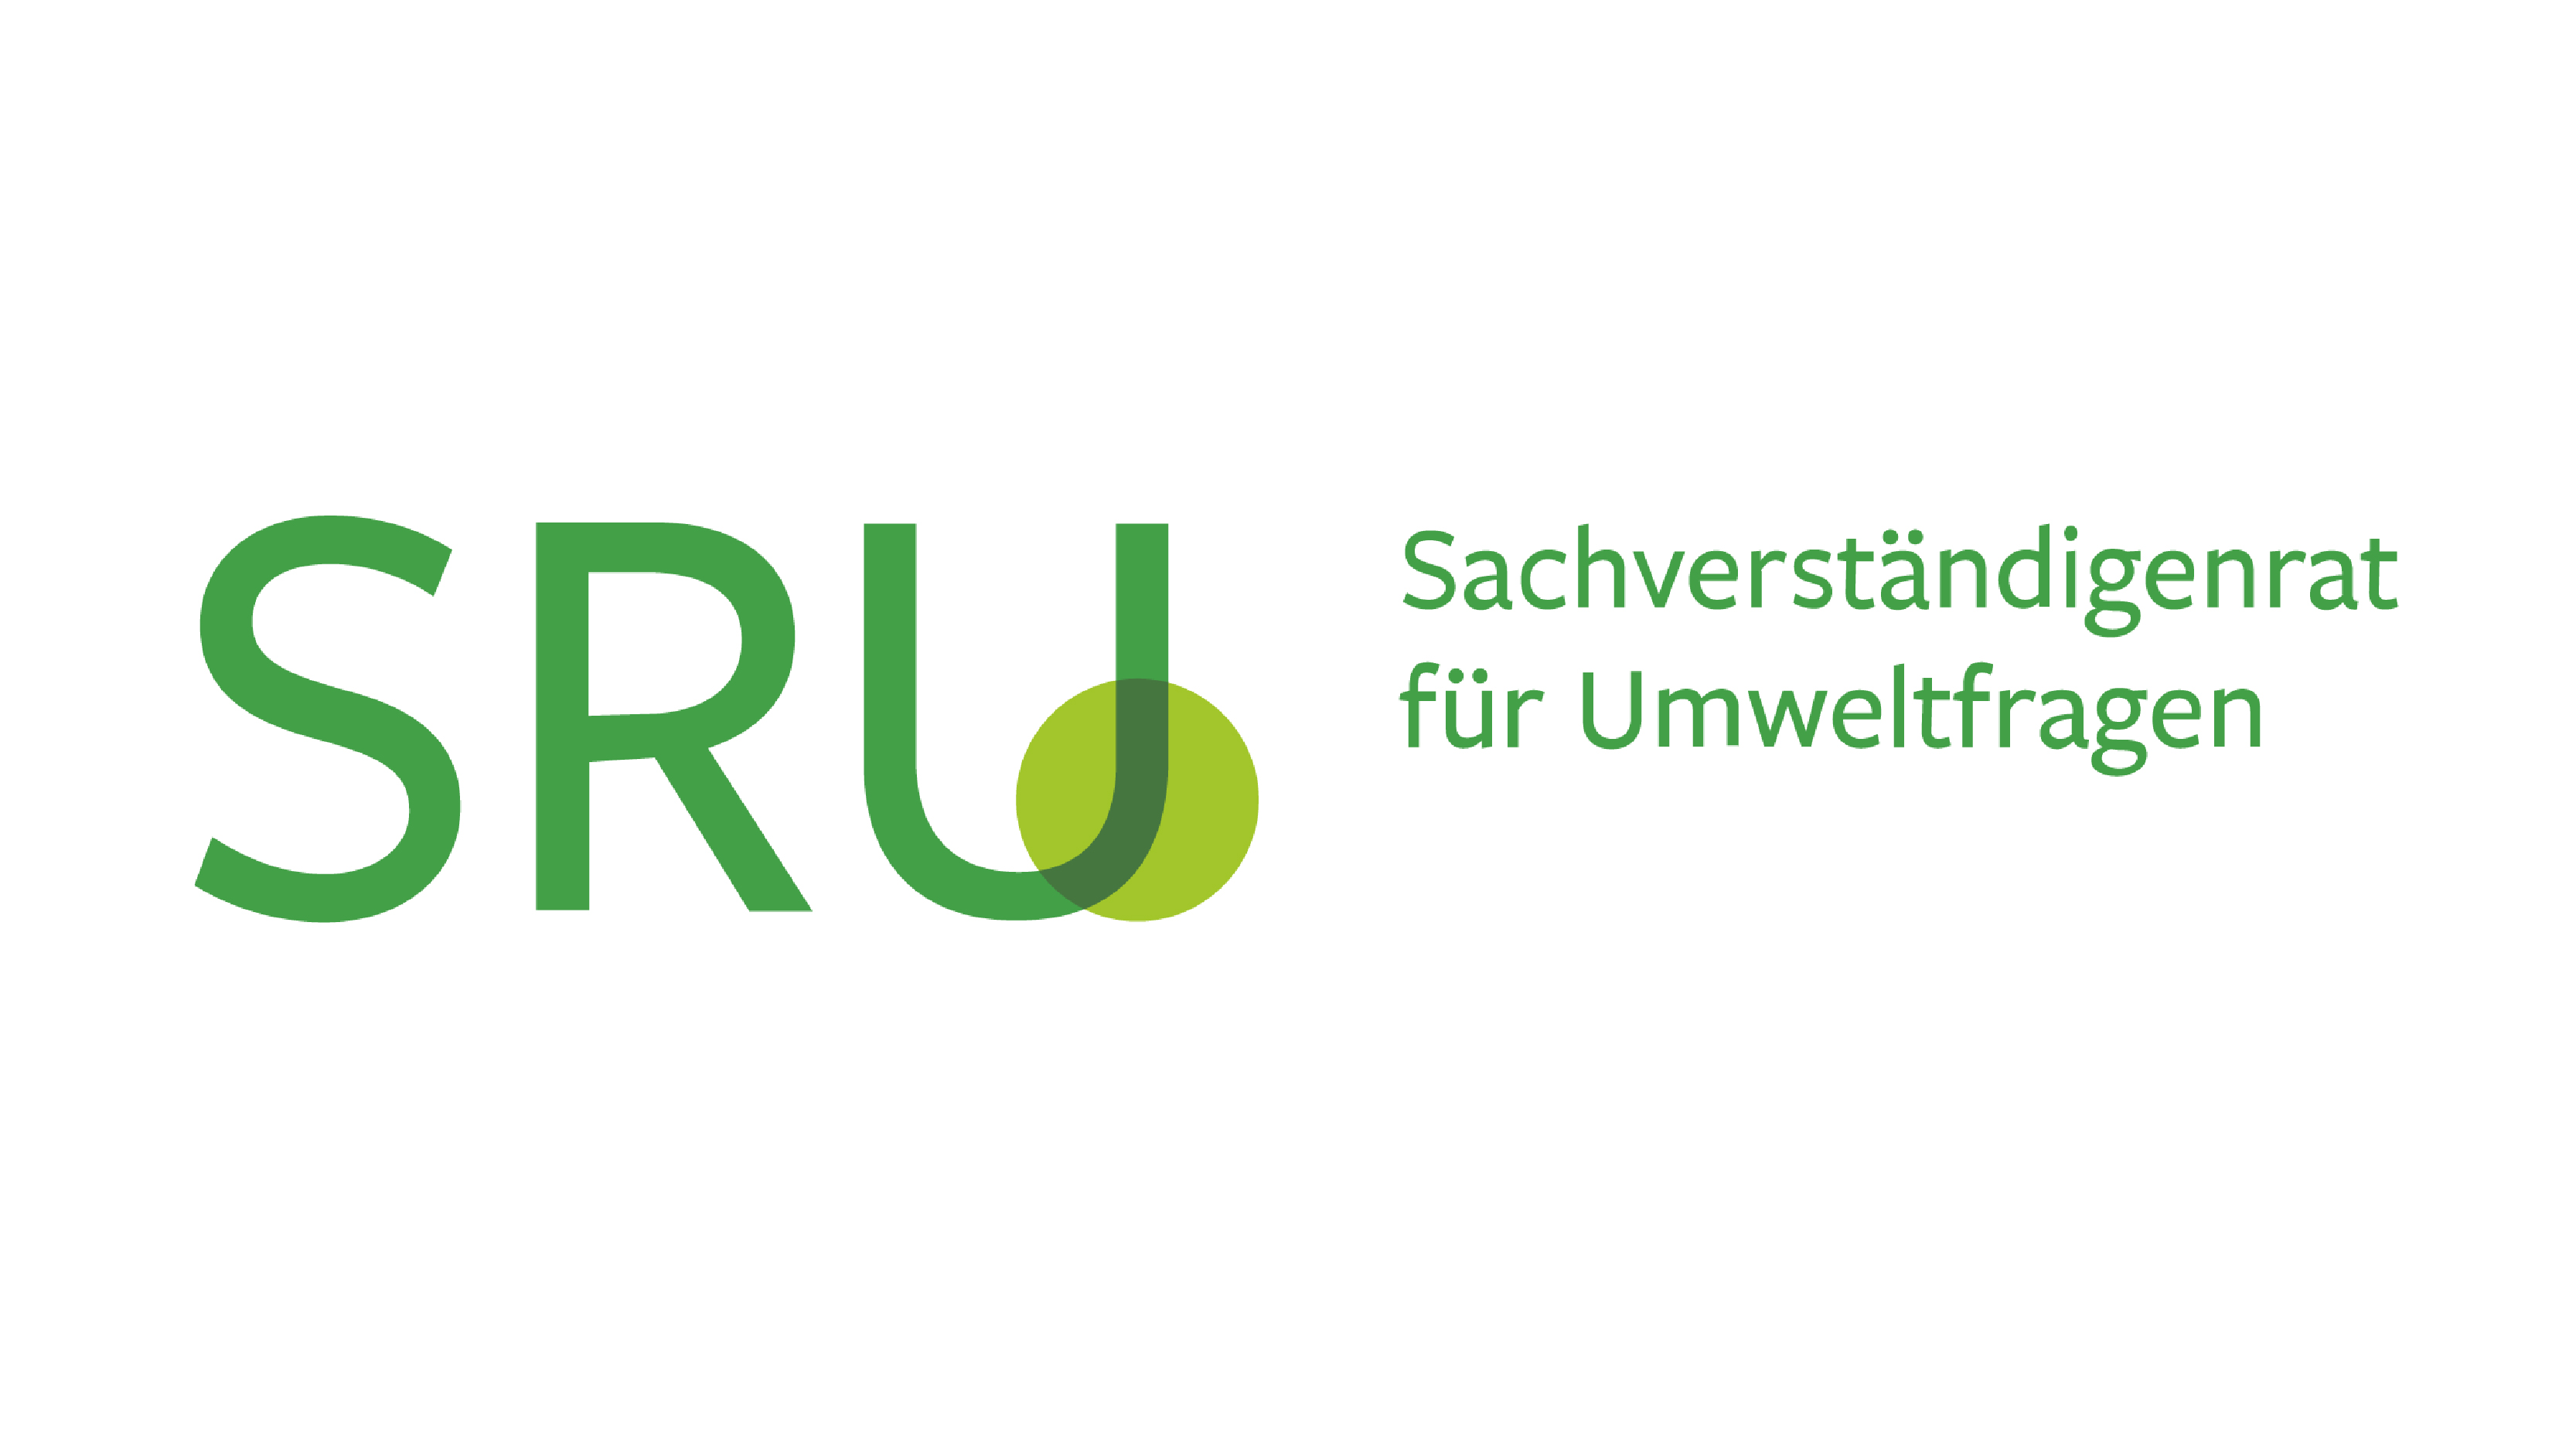 German Advisory Council on the Environment (SRU)